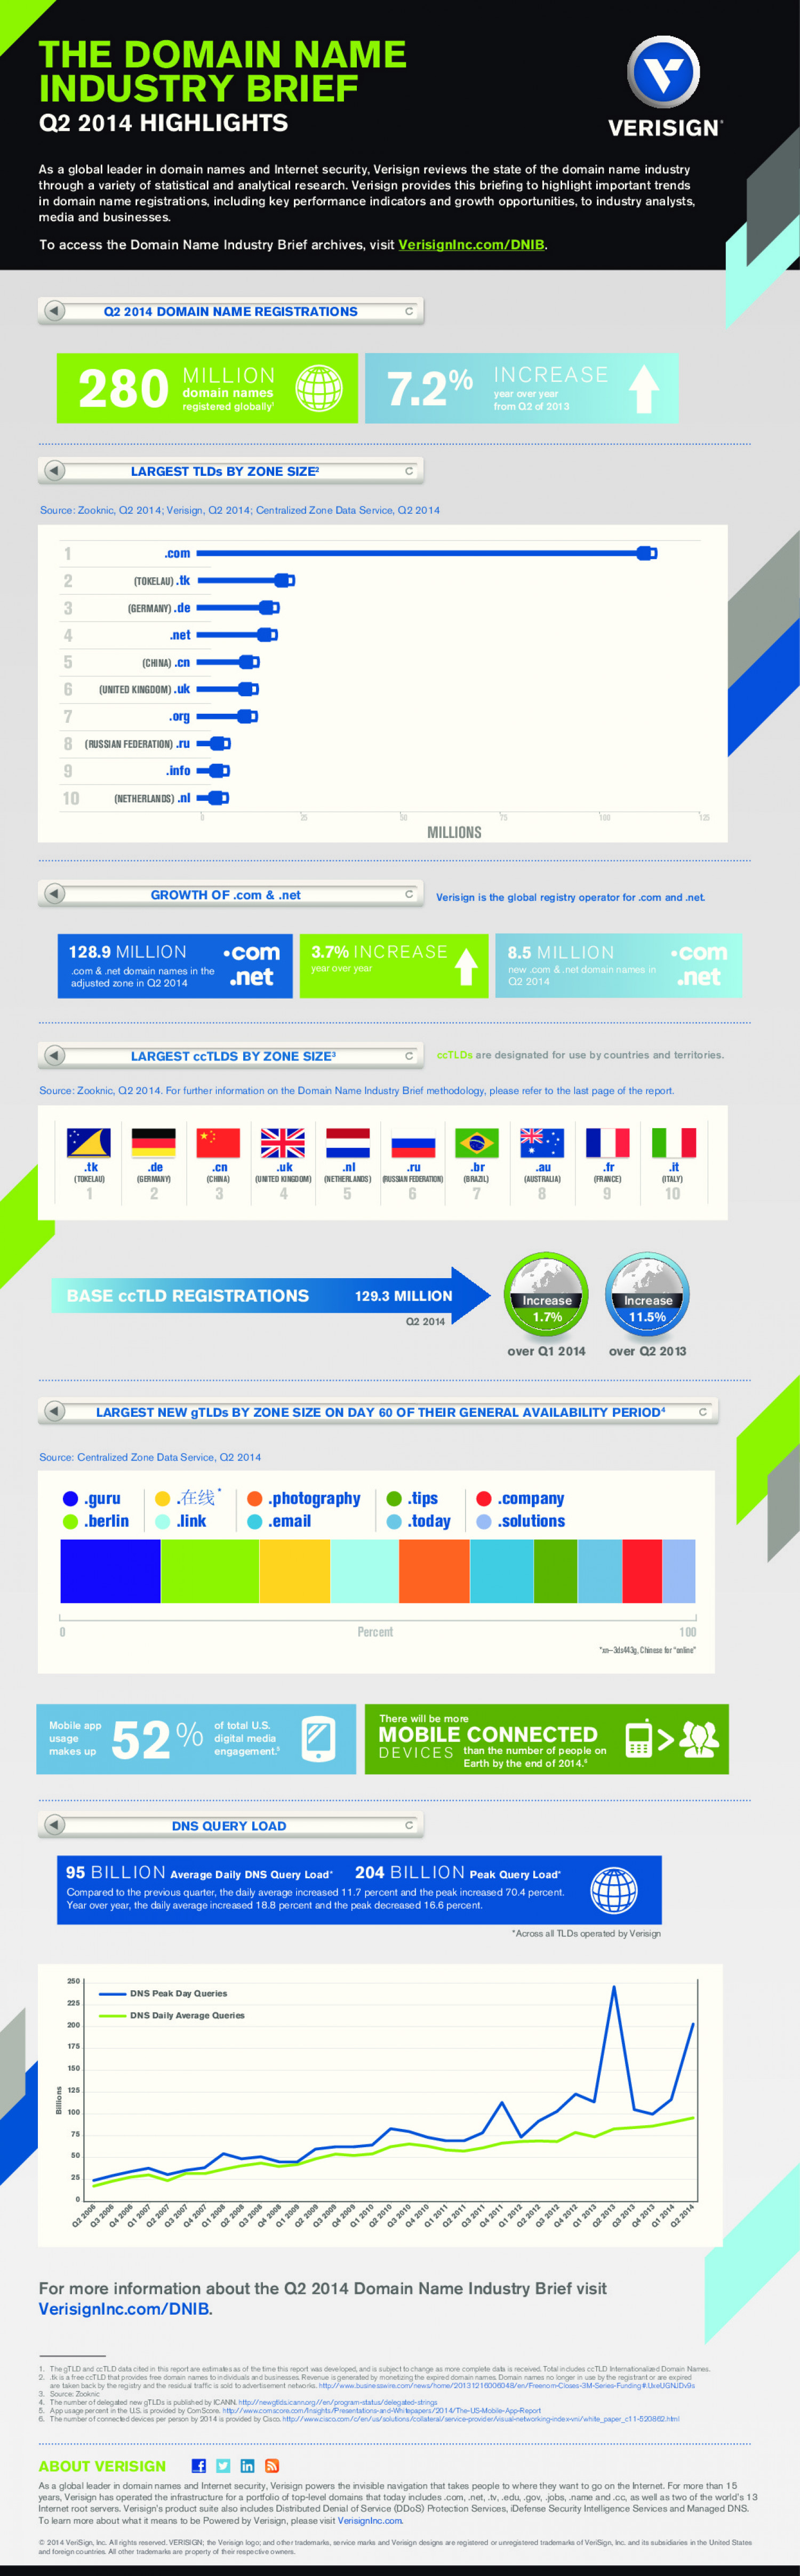 Q2 2014 Domain Name Industry Brief  Infographic